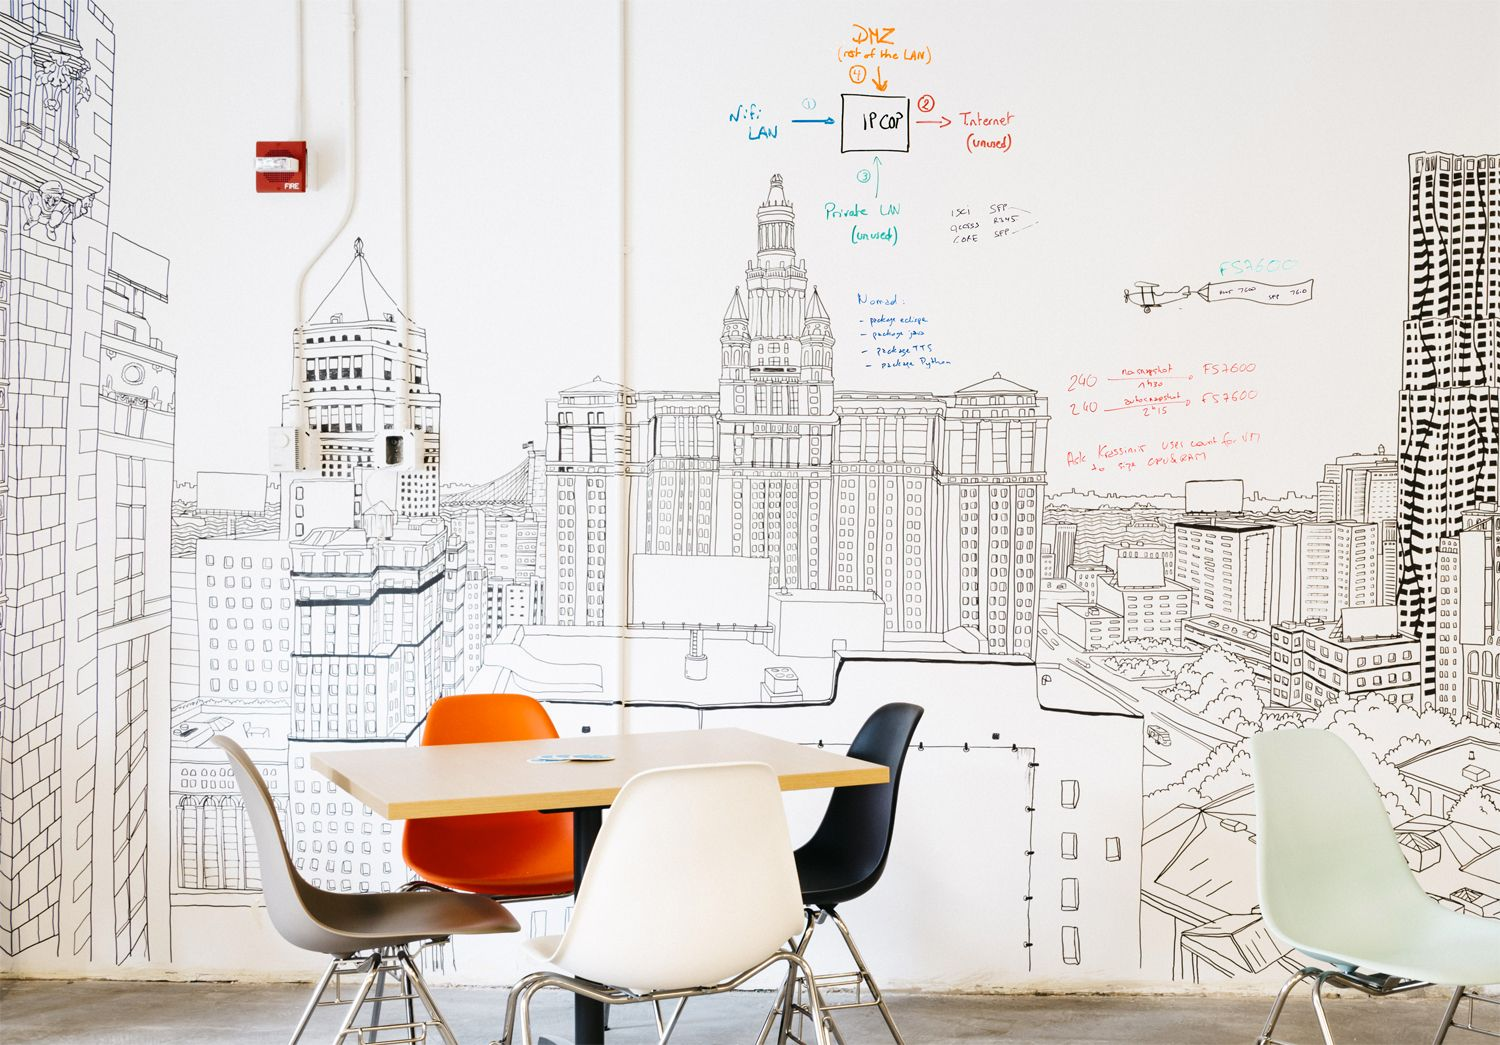 How To Turn A Wall Into A Whiteboard Ideapaint Clear Dry Erase Paint Lets You Turn Any Color